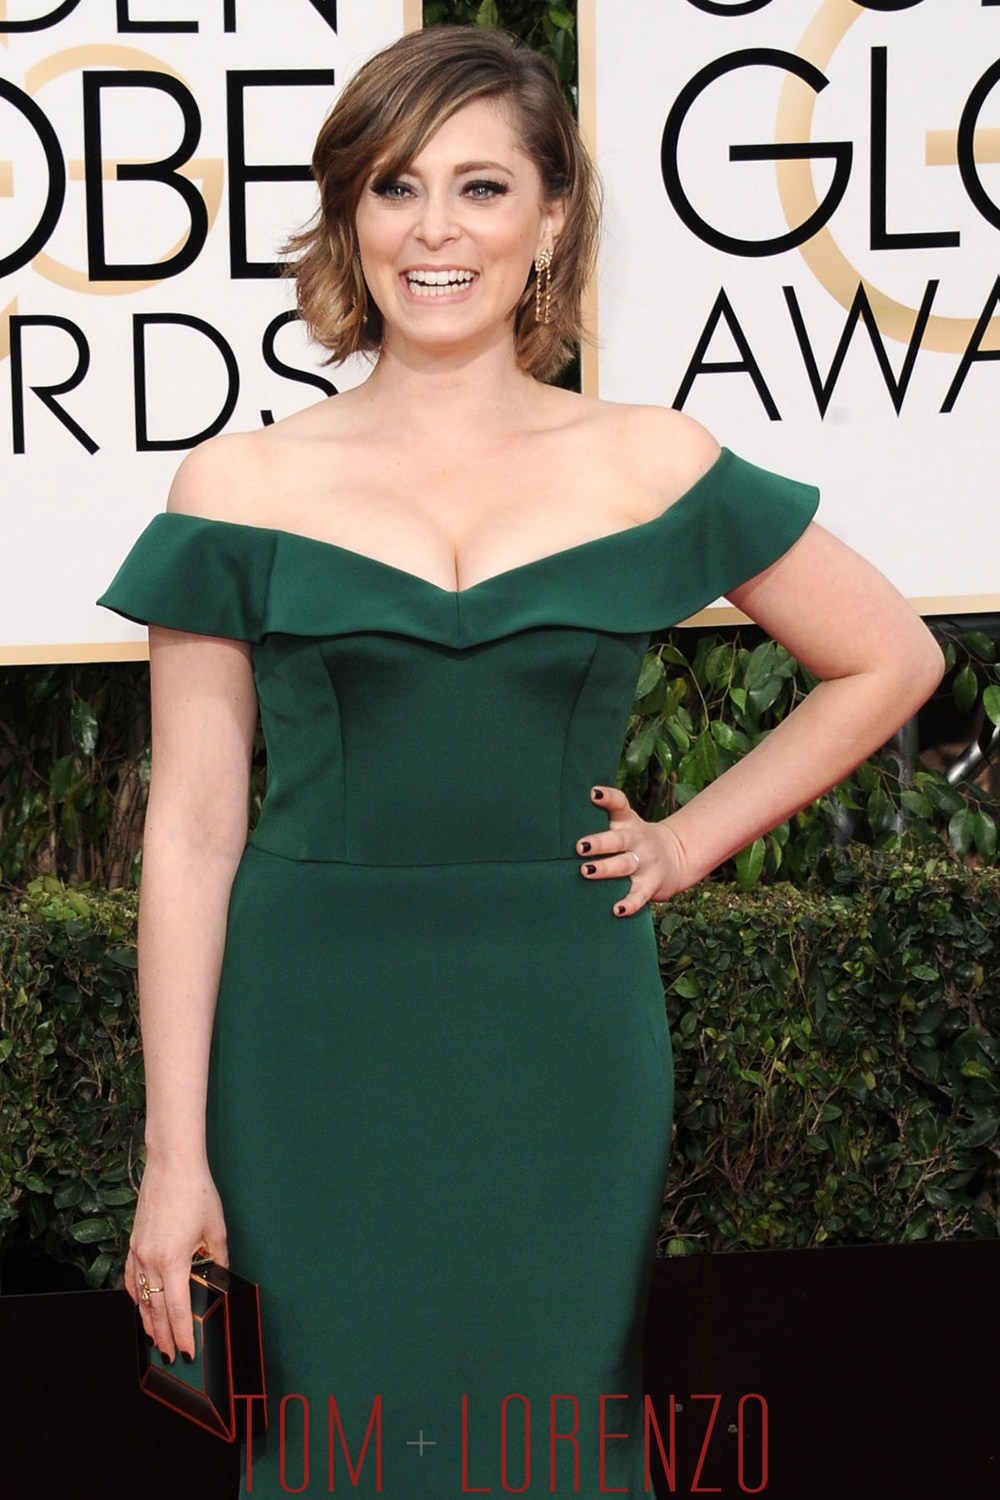 Rachel-Bloom-Golden-Globes-2016-Red-Carpet-Fashion-Christian-Siriano-Tom-Lorenzo-Site (1)